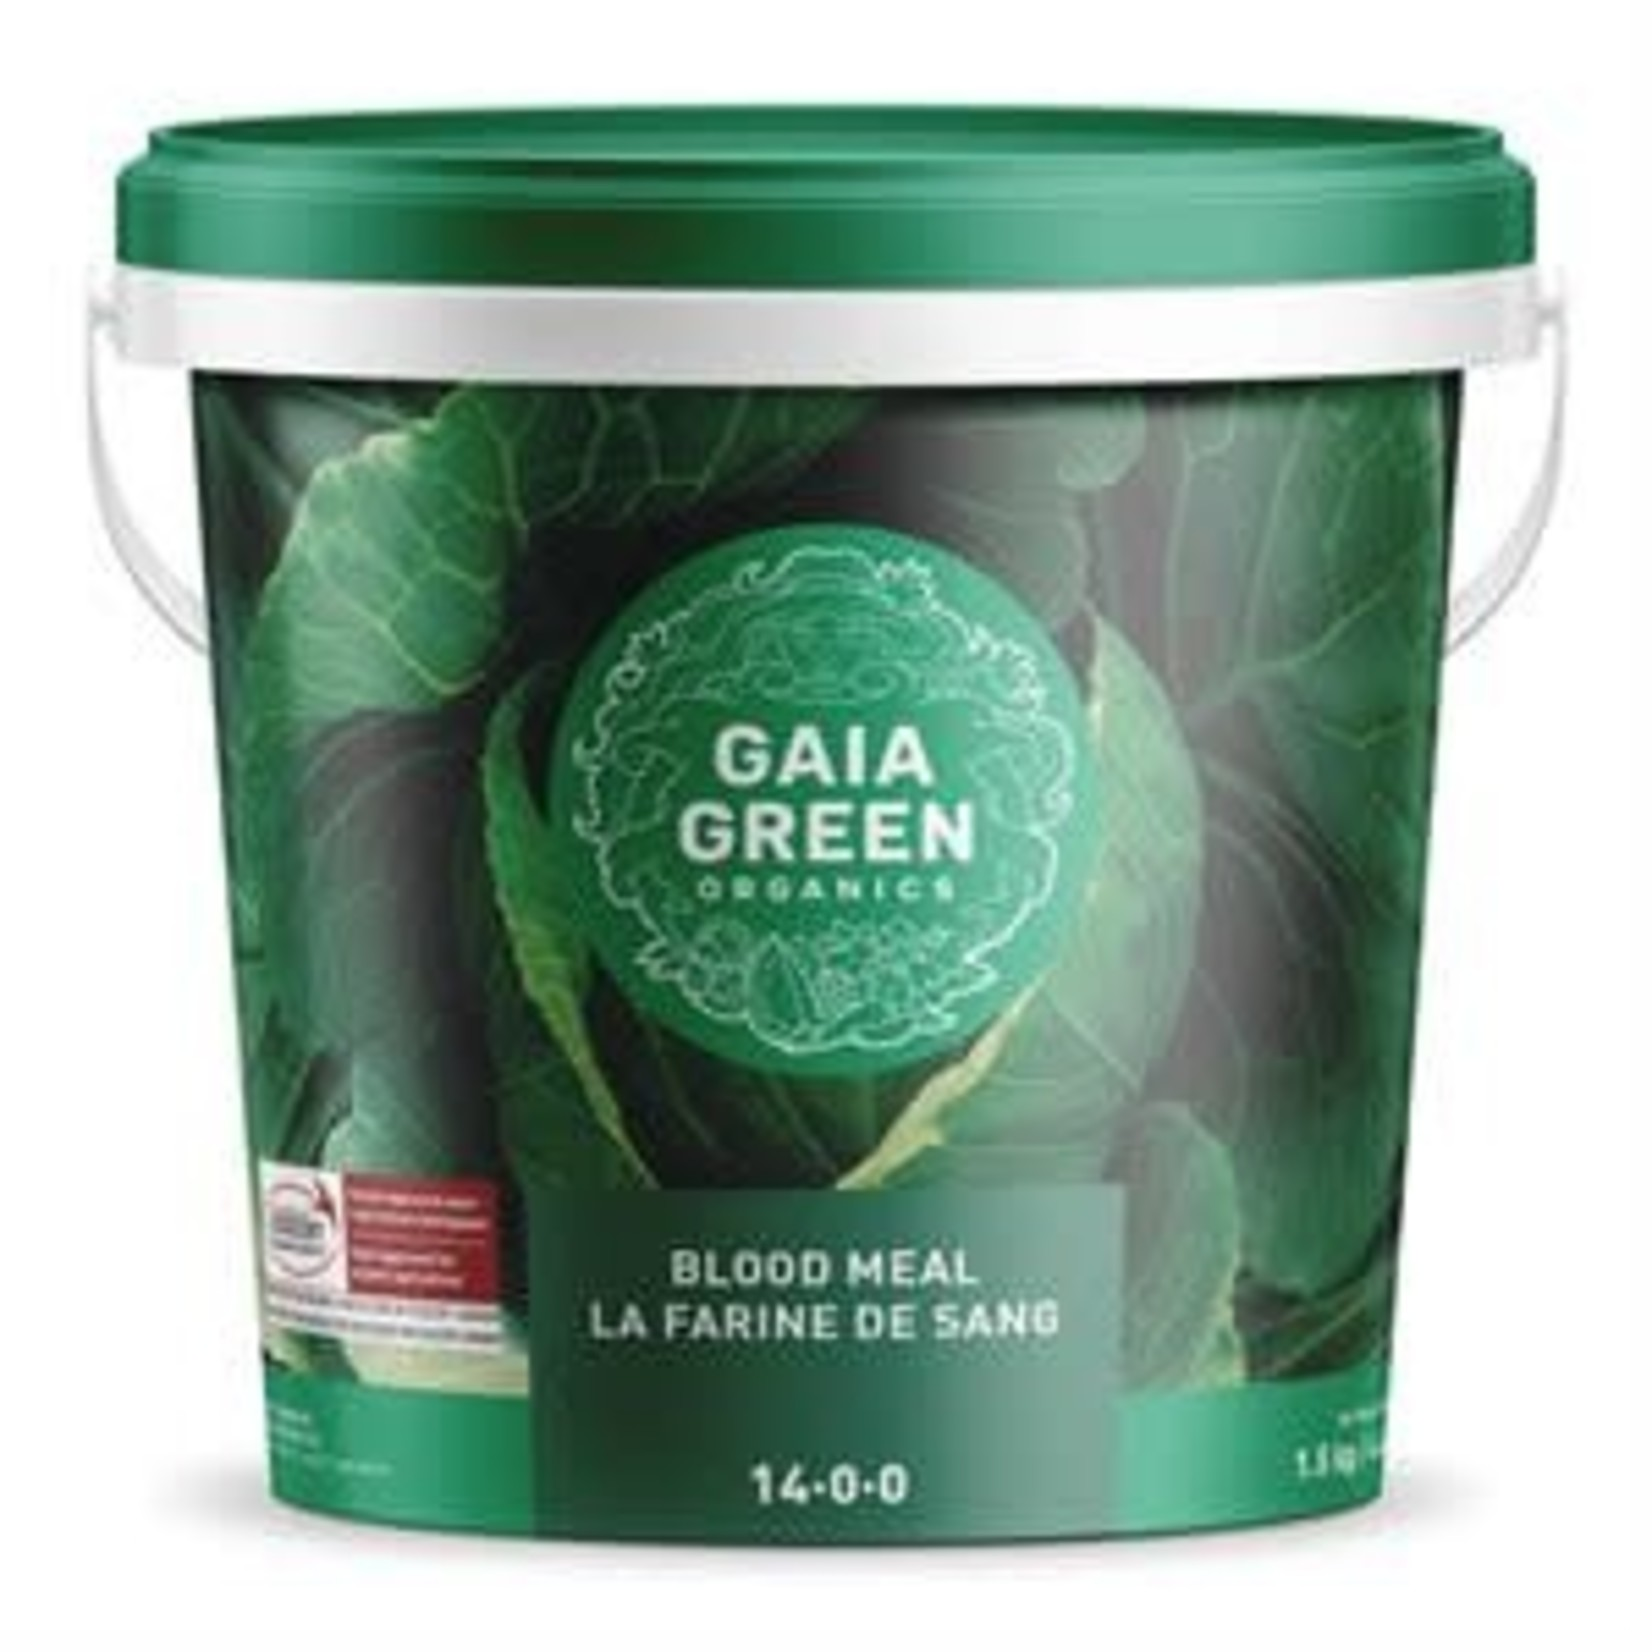 Gaia Green Blood Meal 14-0-0, 1.5kg